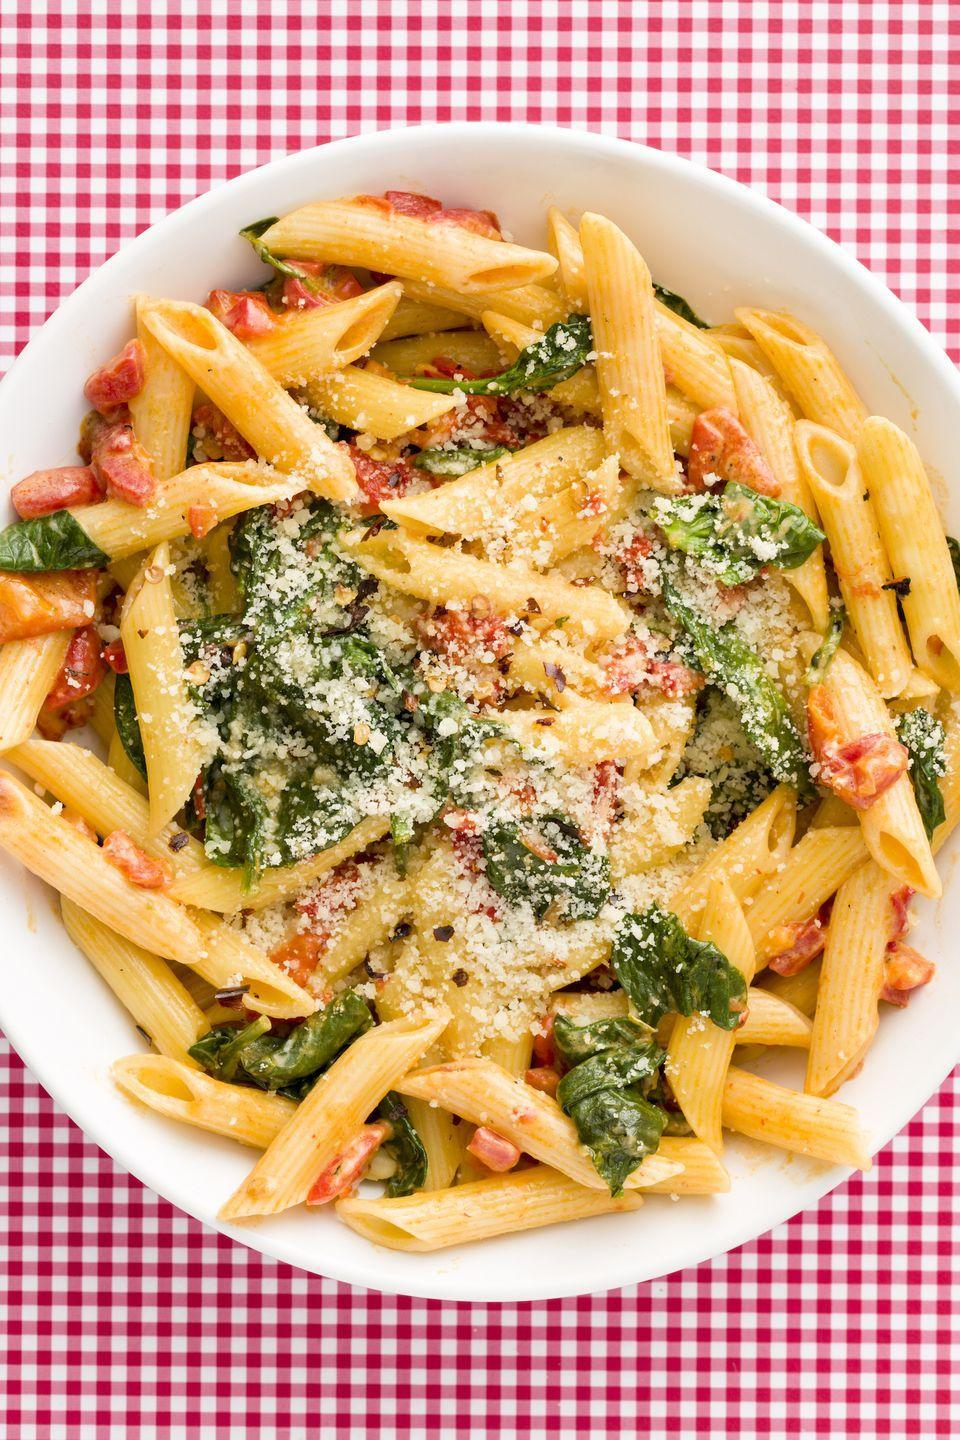 "<p>With a super-light cream sauce, this spinach and roasted red pepper penne is addictive.</p><p>Get the recipe from <a href=""https://www.delish.com/cooking/recipe-ideas/recipes/a46759/creamy-roasted-red-pepper-penne-recipe/"" rel=""nofollow noopener"" target=""_blank"" data-ylk=""slk:Delish"" class=""link rapid-noclick-resp"">Delish</a>.</p>"